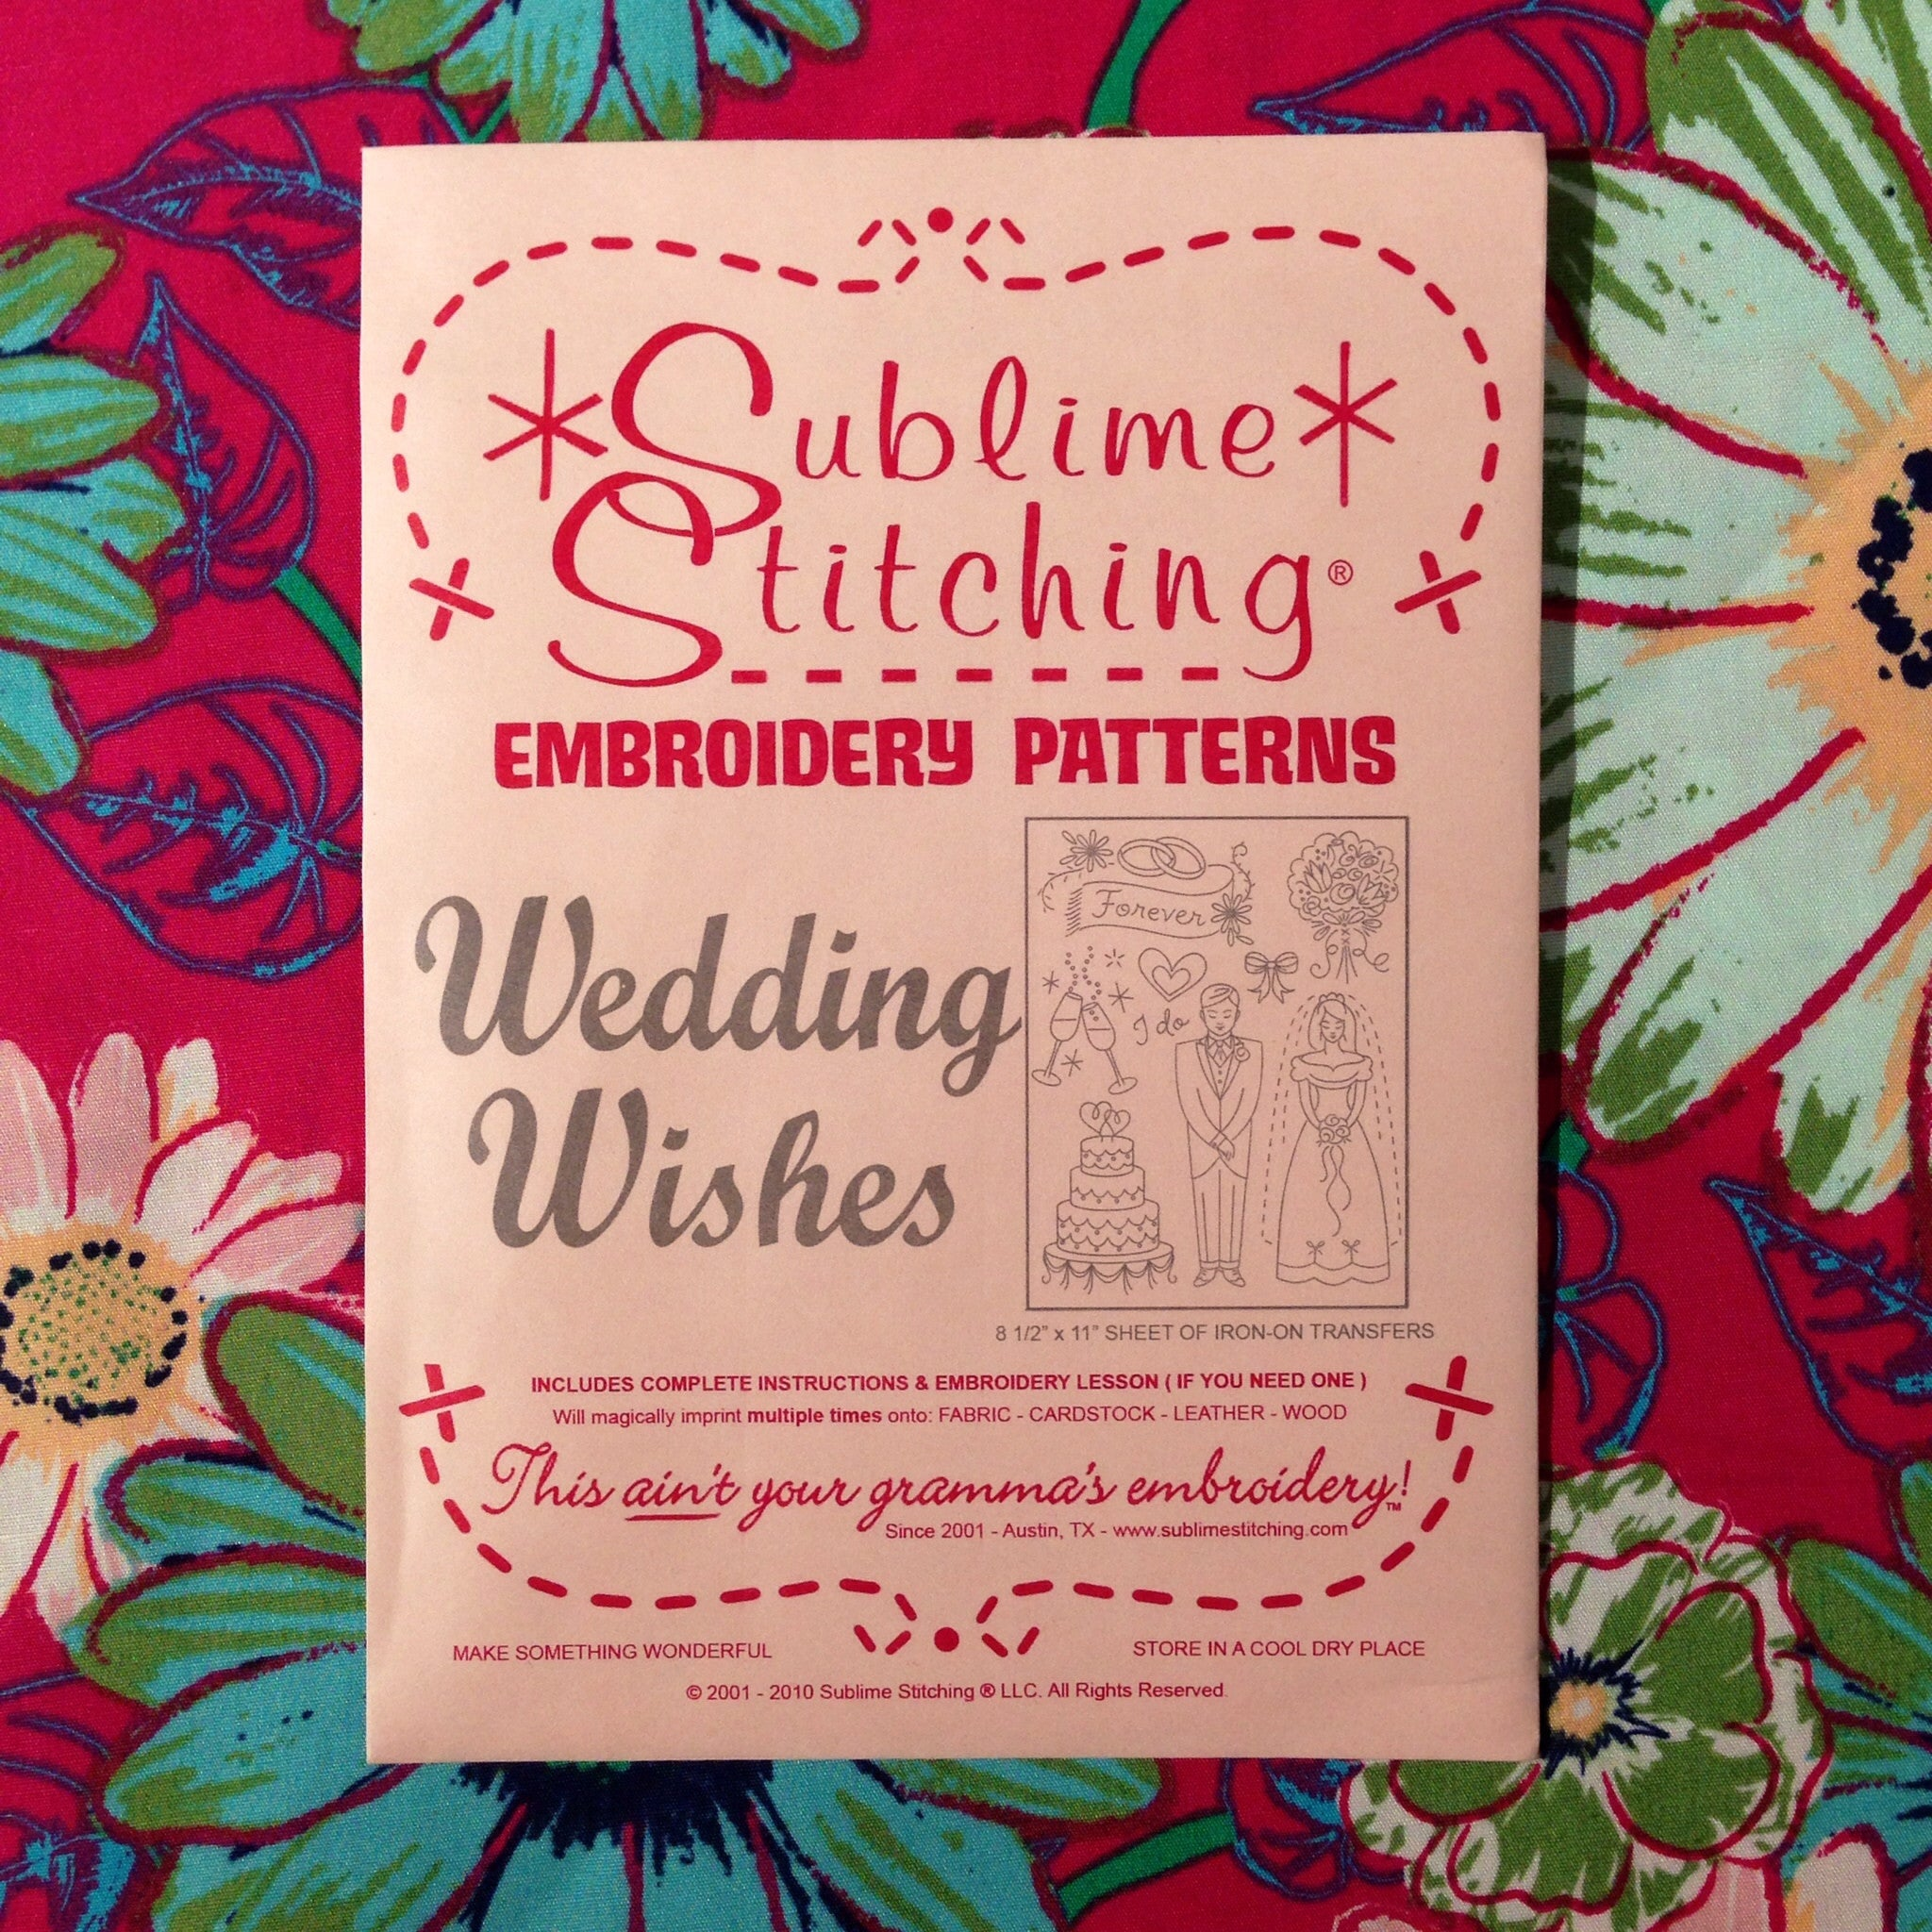 Sublime Stitching Embroidery Patterns - Wedding Wishes